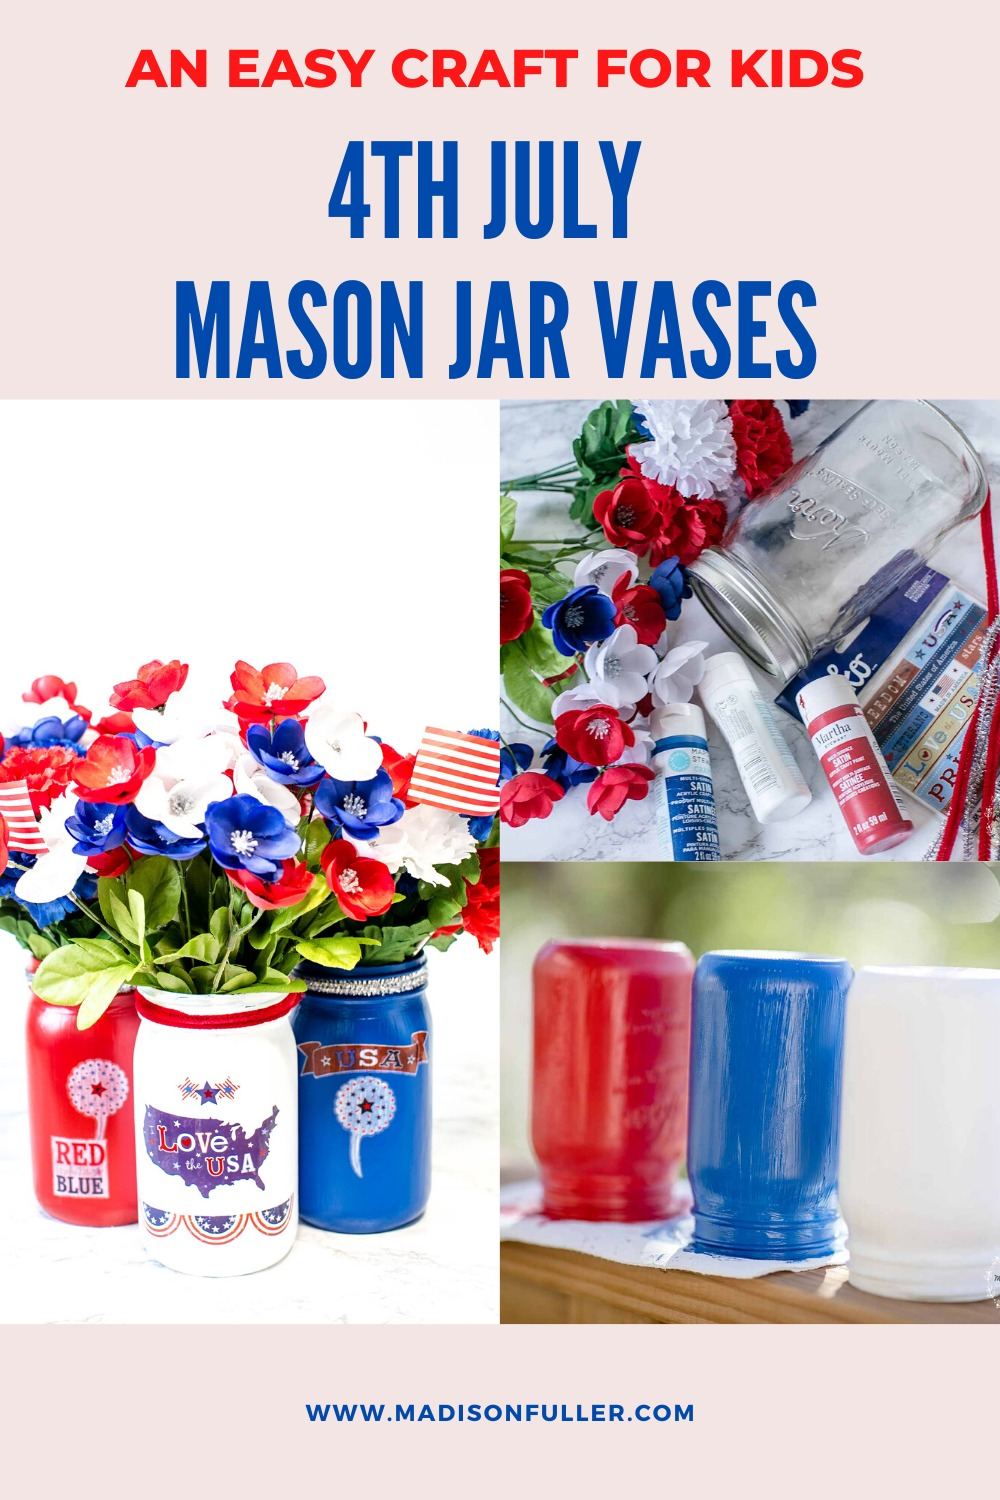 An Easy Craft for Kids. 4th July Mason Jar Vases